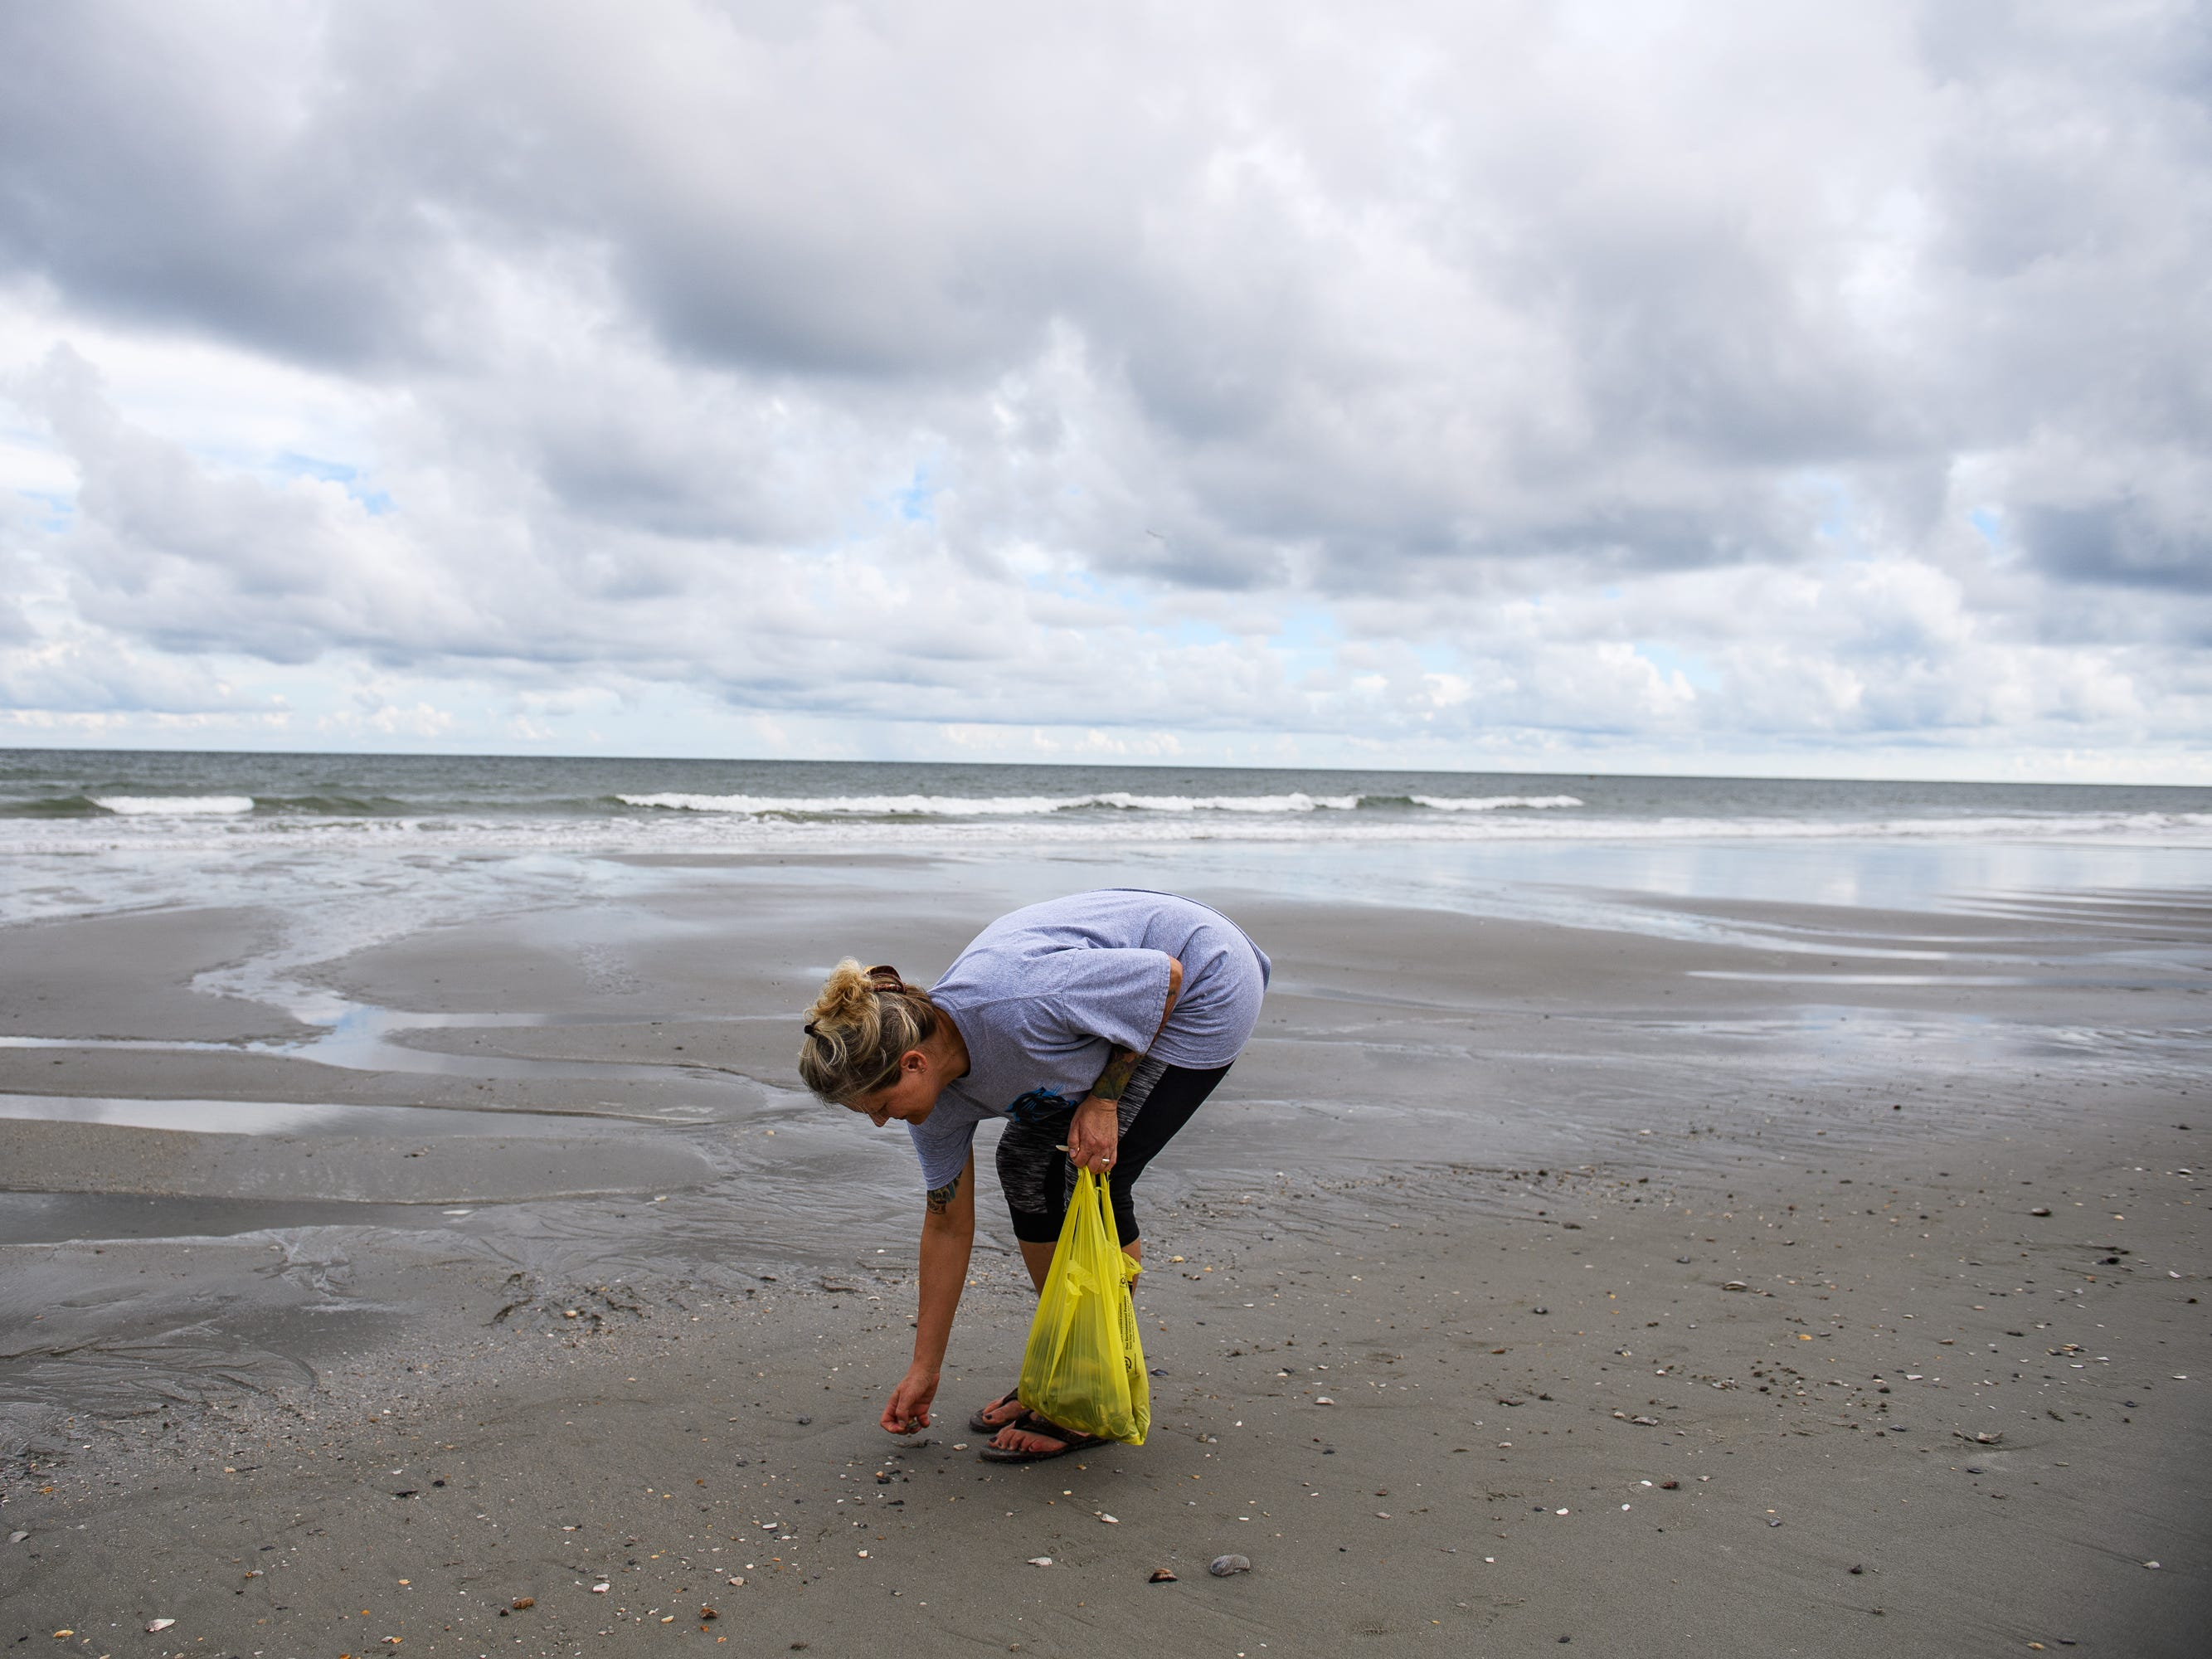 Candace Williams looks for seashells at Myrtle Beach on Tuesday, Sept. 11, 2018, days before Hurricane Florence is expected to hit the area. Williams and her family are still waiting to see how Hurricane Florence progresses, but will most likely leave if it is expected to be a category 3 storm by the time it hits Myrtle Beach.